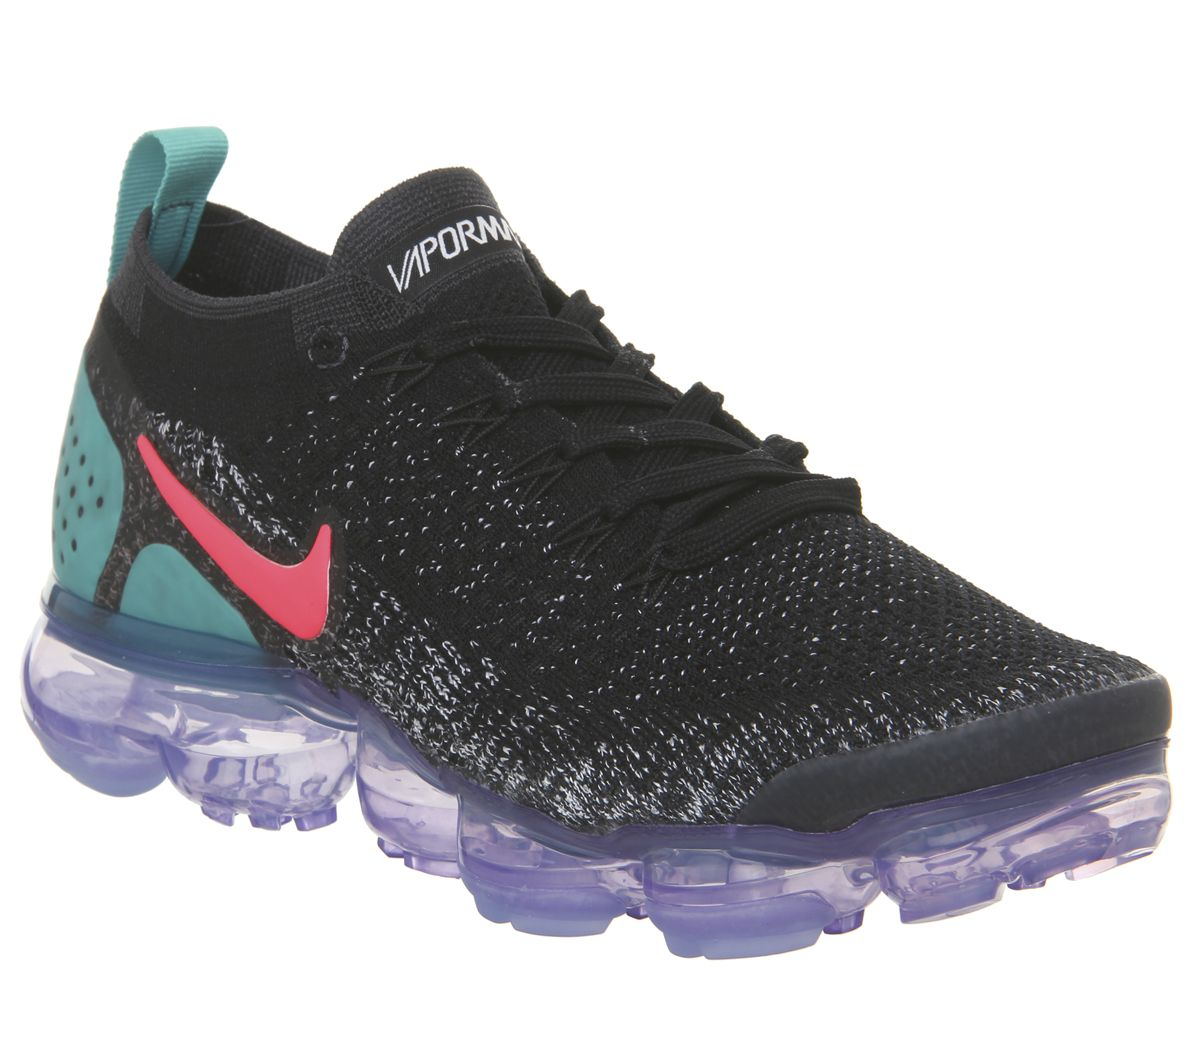 7702c1523c273 Nike Air Vapormax Flyknit 2 Trainers Black Hot Punch White Dusty ...